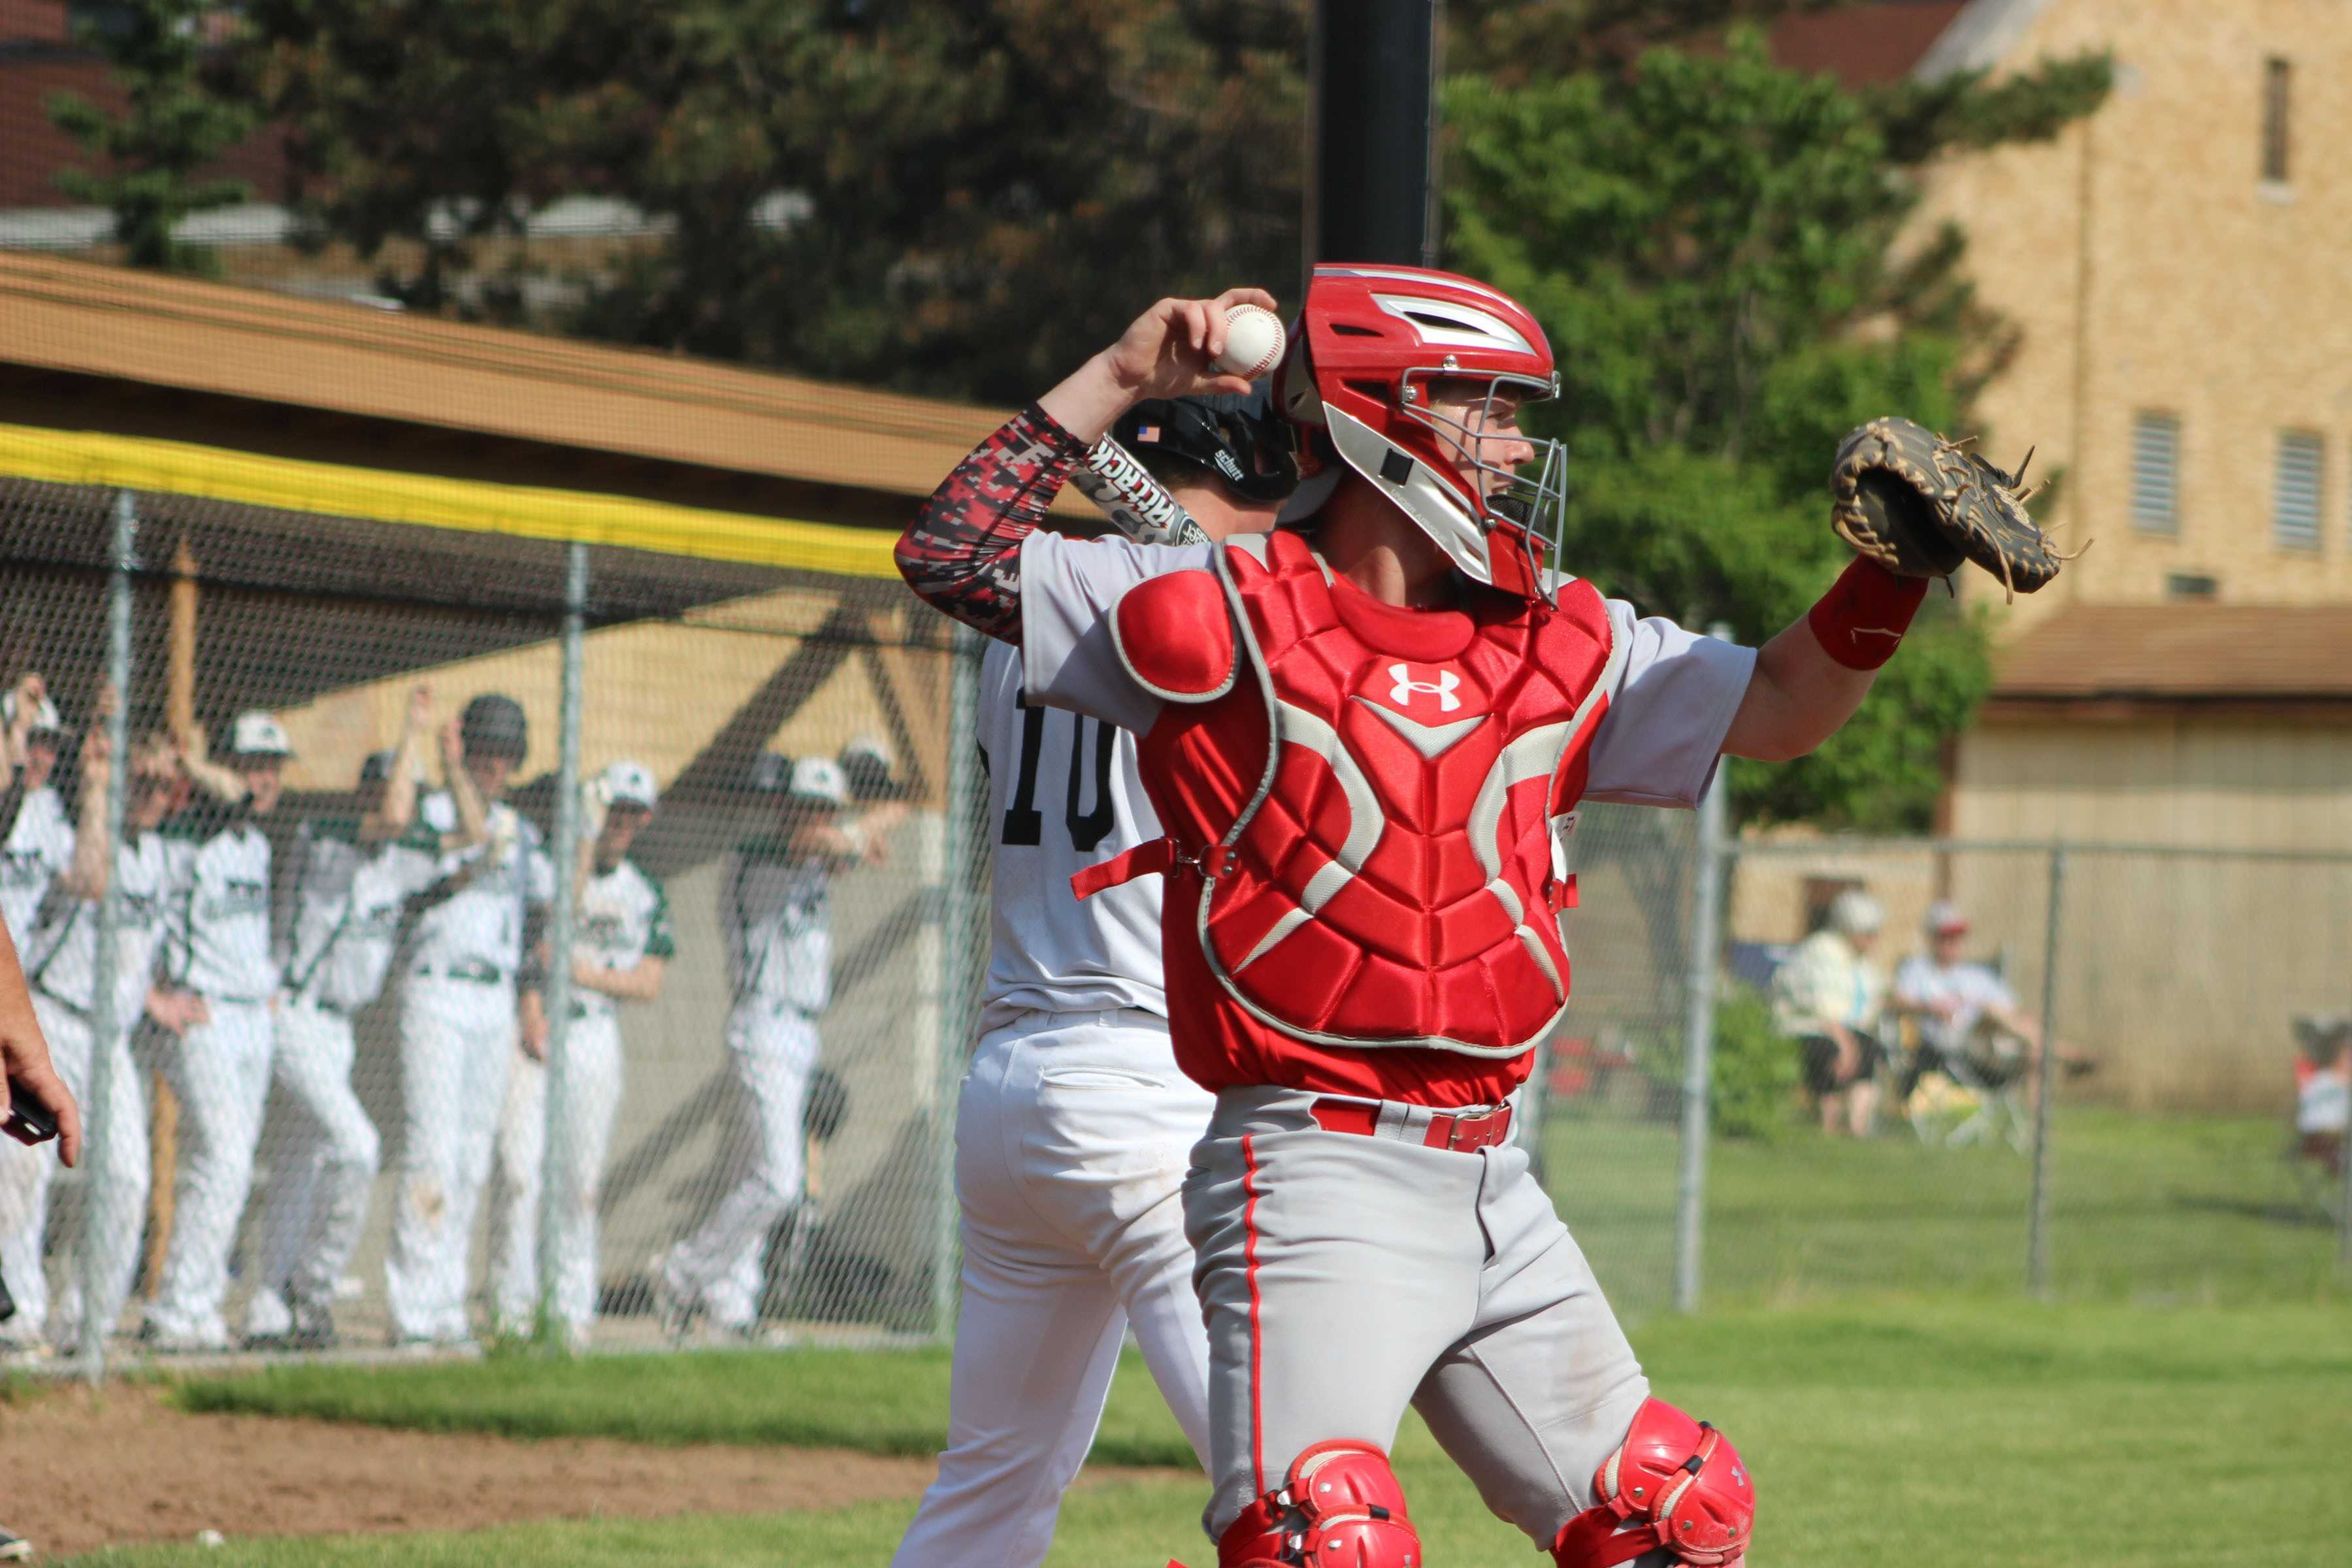 Baseball team looks toward doubleheader